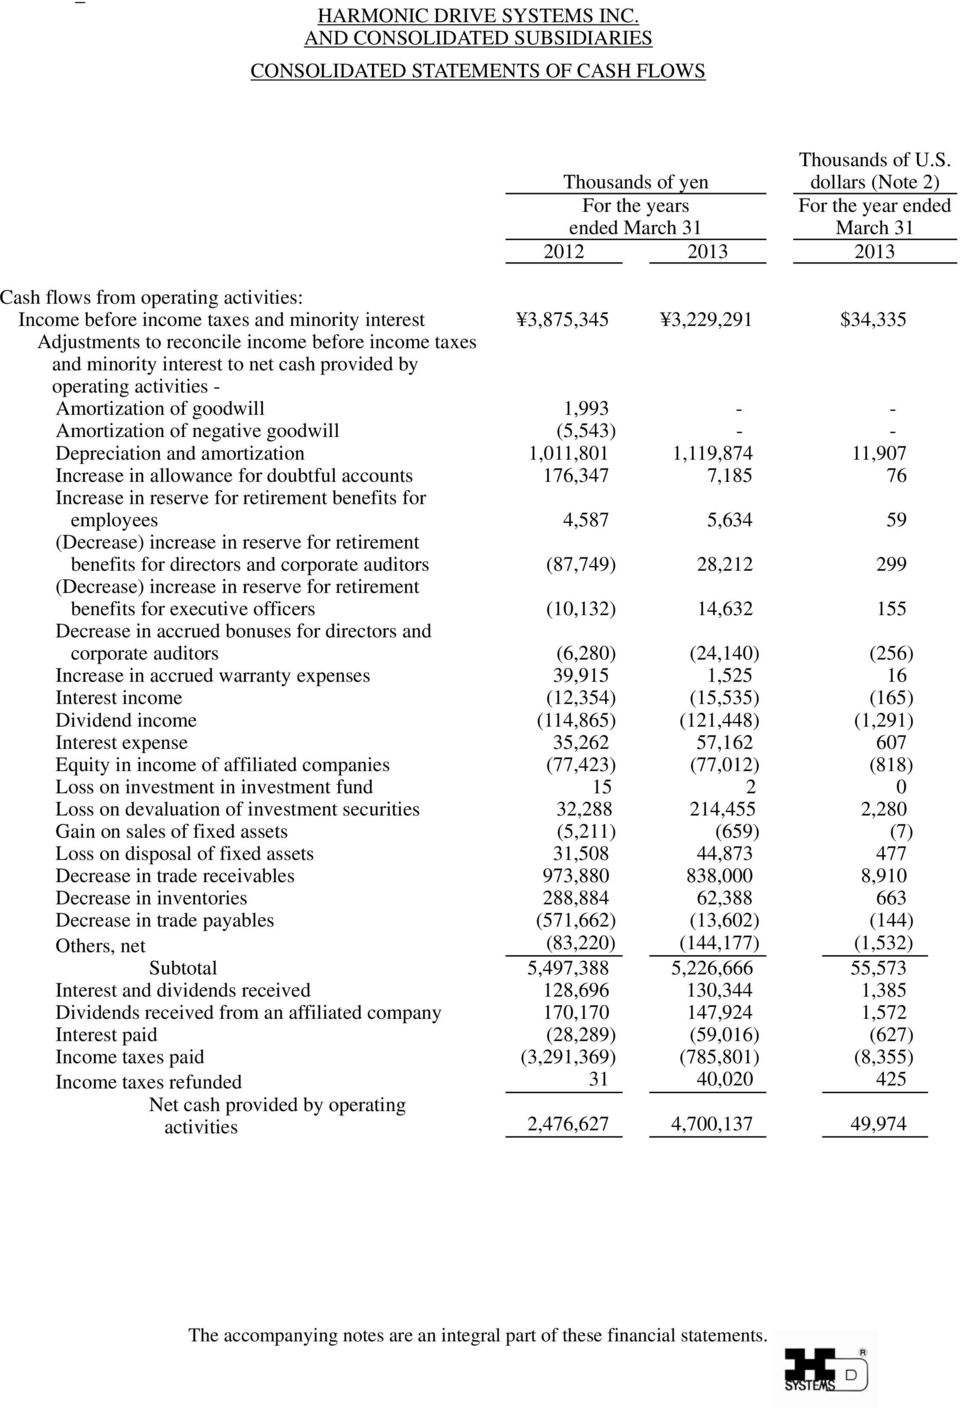 from operating activities: Income before income taxes and minority interest 3,875,345 3,229,291 $34,335 Adjustments to reconcile income before income taxes and minority interest to net cash provided